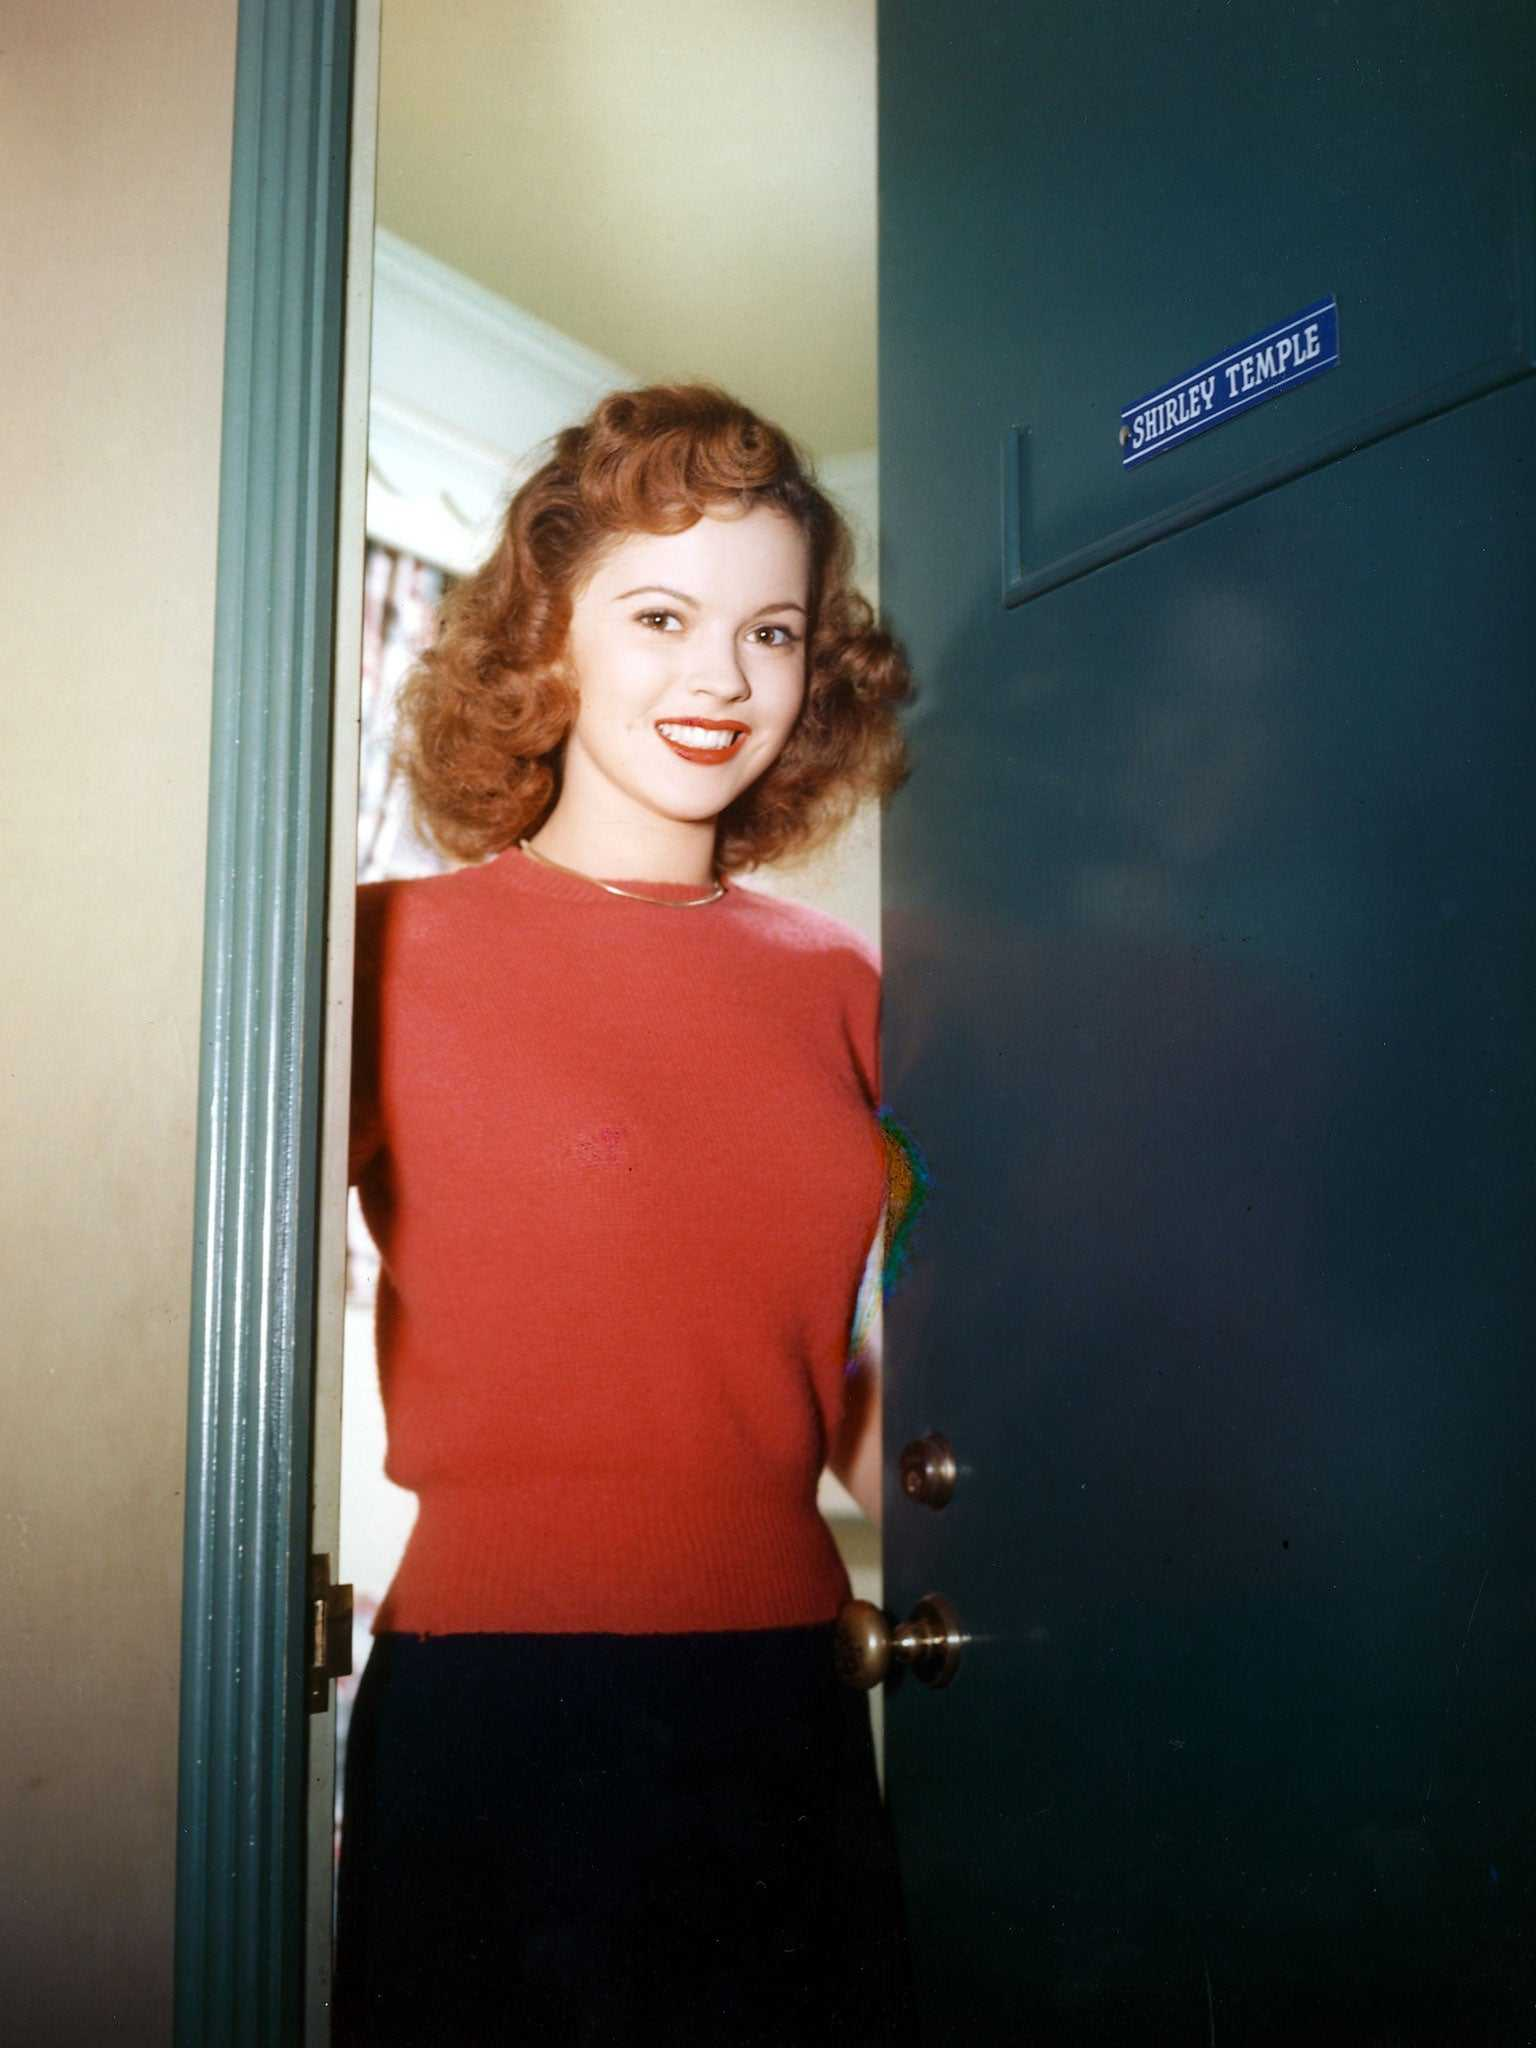 shirley temple gorgeous